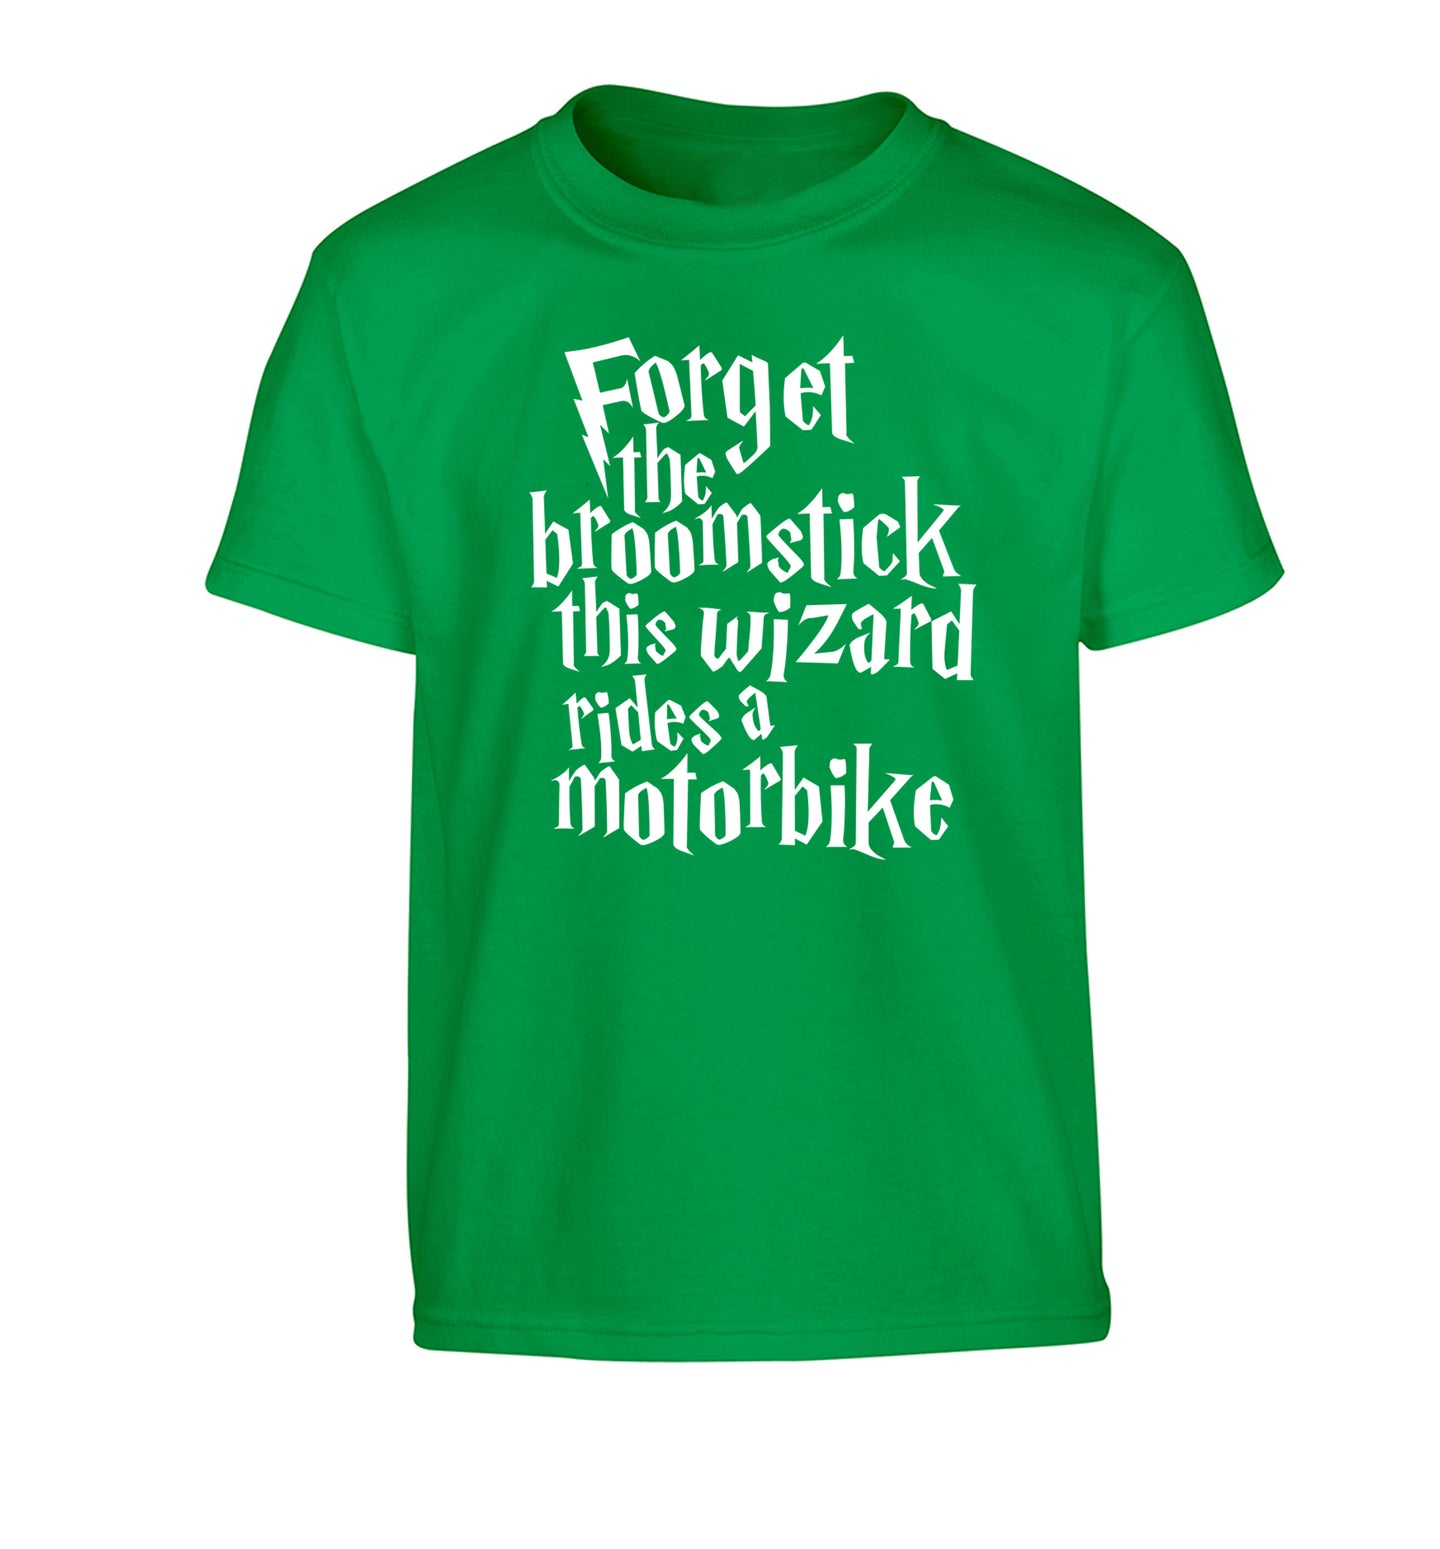 Forget the broomstick this wizard rides a motorbike Children's green Tshirt 12-14 Years